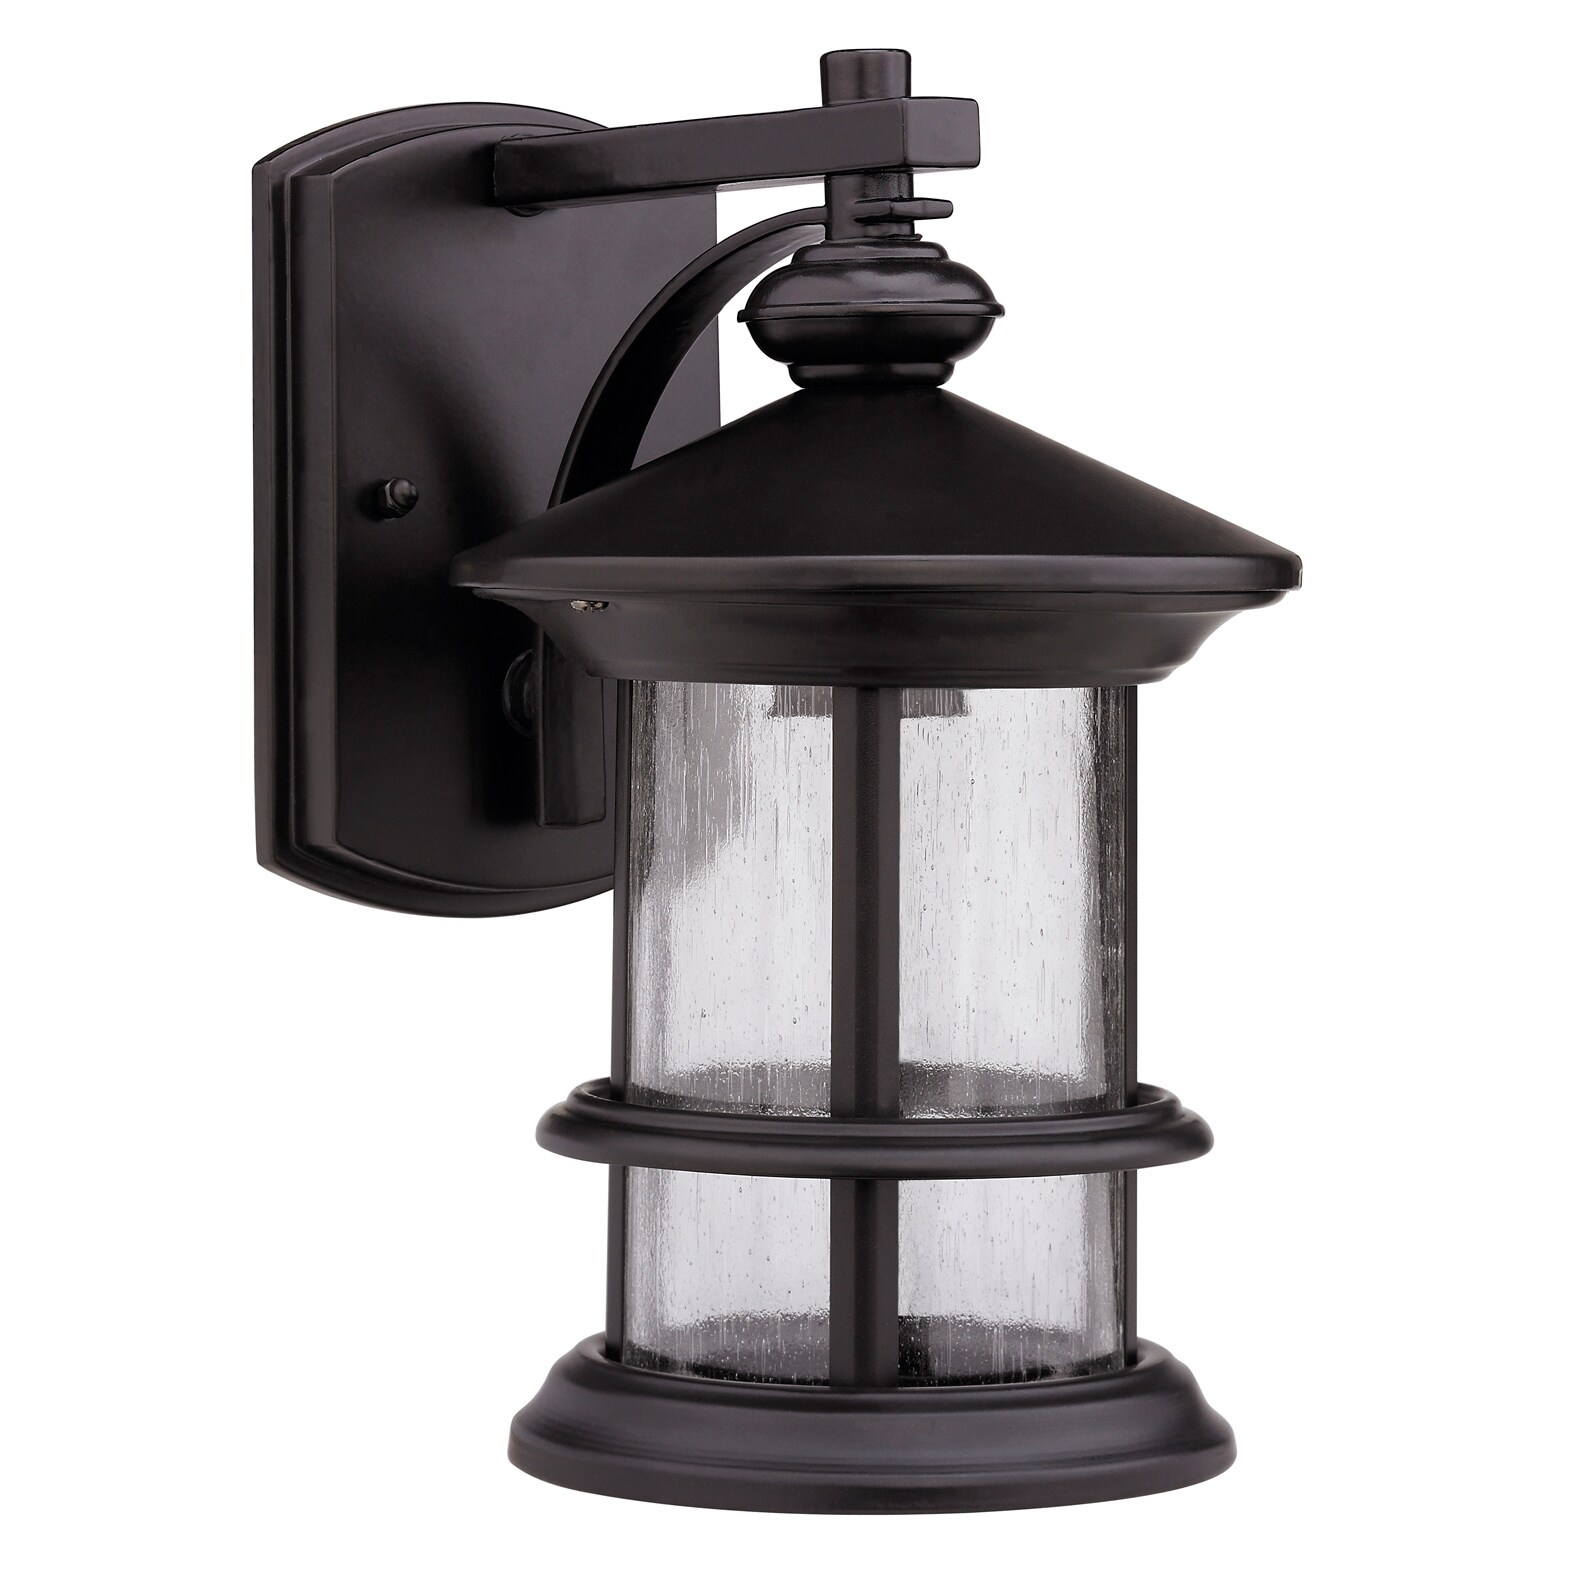 Shop rubbed dark bronze 1 light outdoor wall light free shipping on orders over 45 overstock 6972329